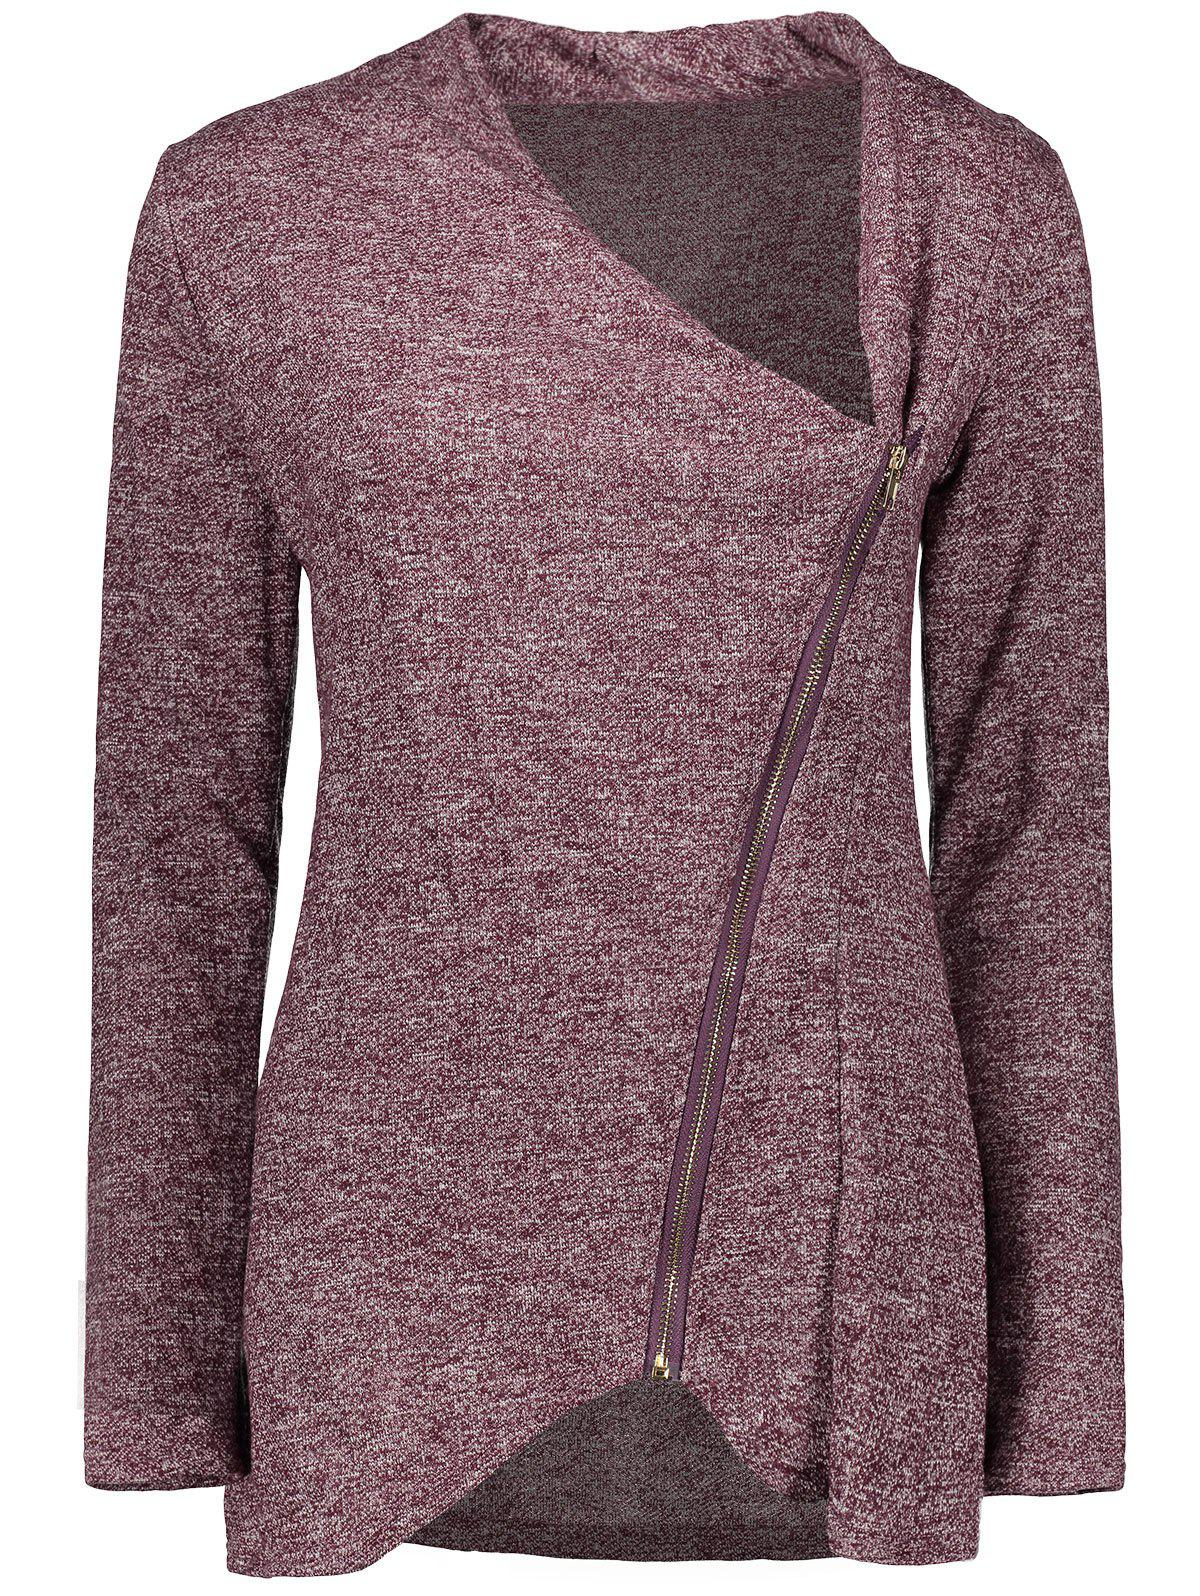 Latest Asymmetrical Zippered Women's Sweatshirt